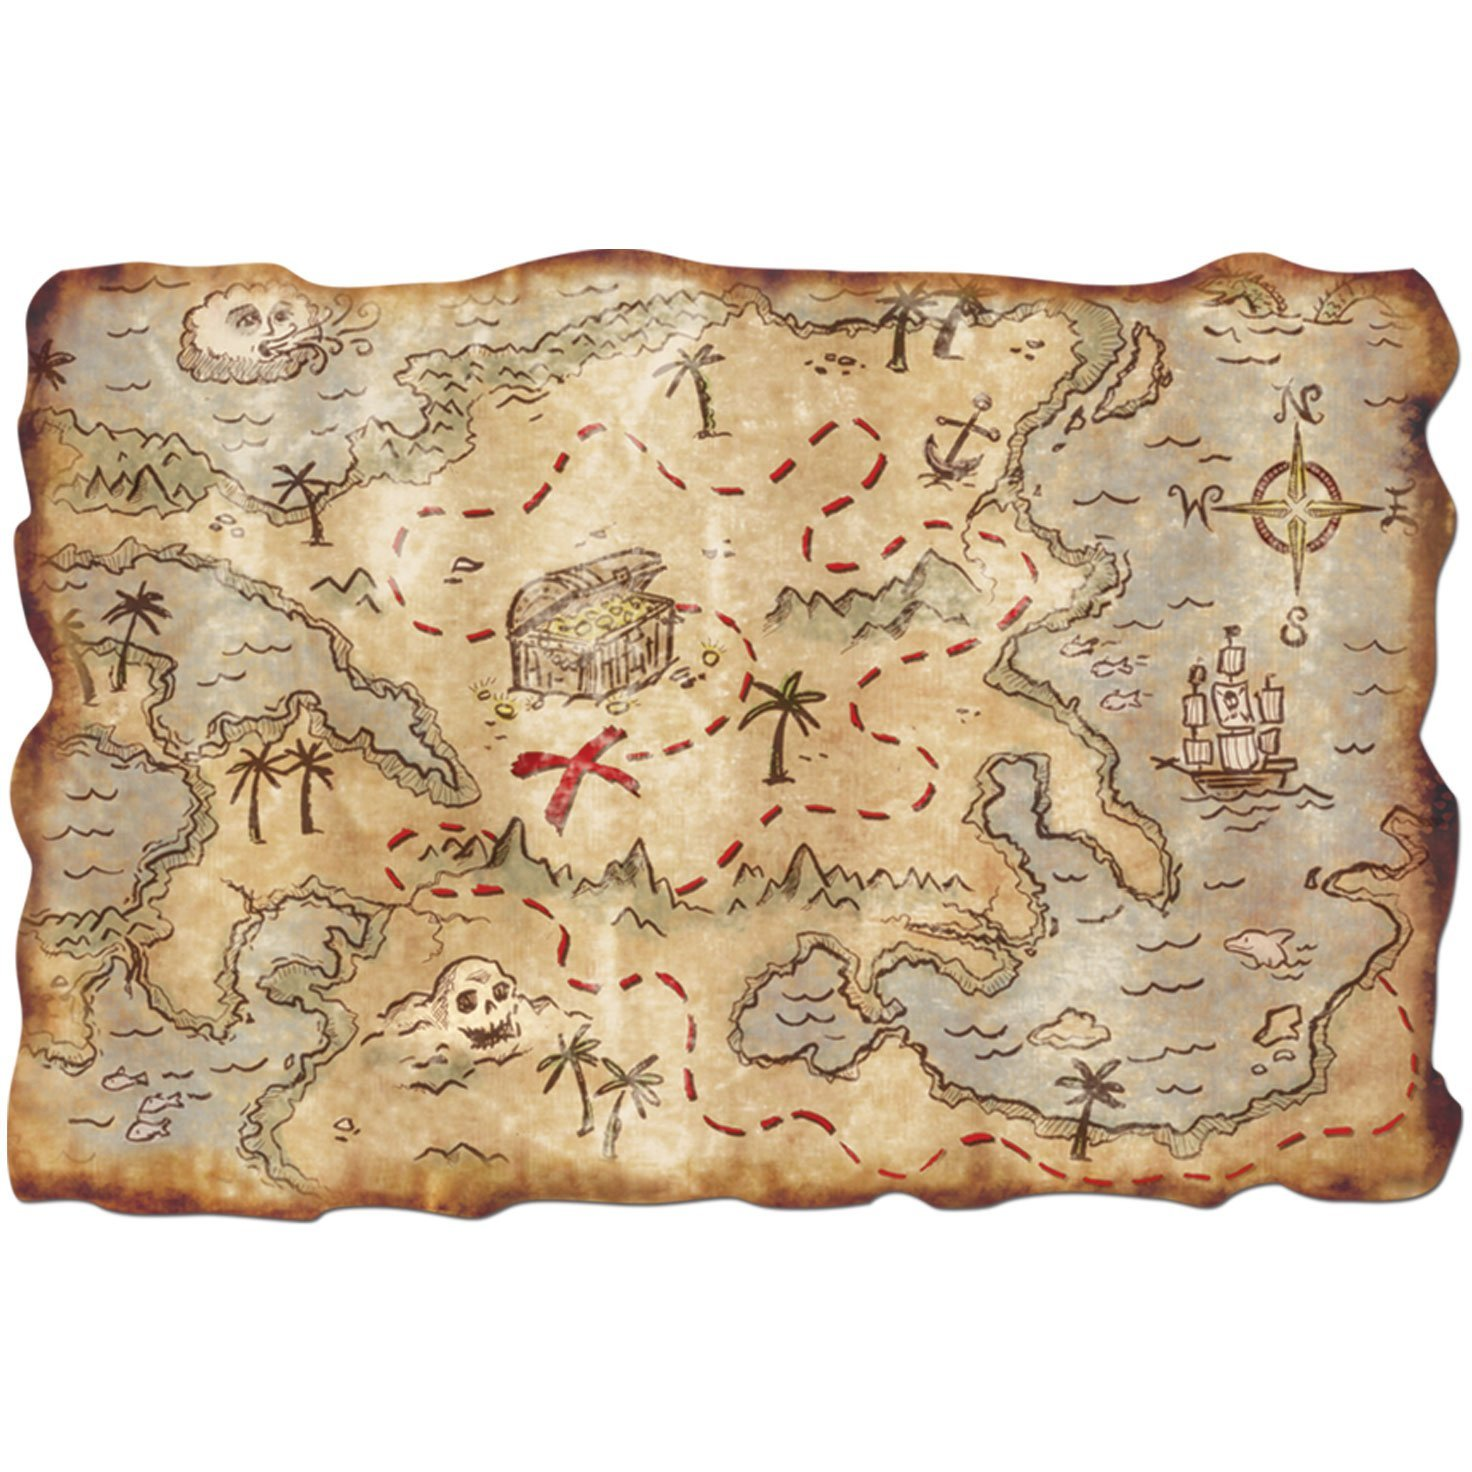 Treasure Map Riddles